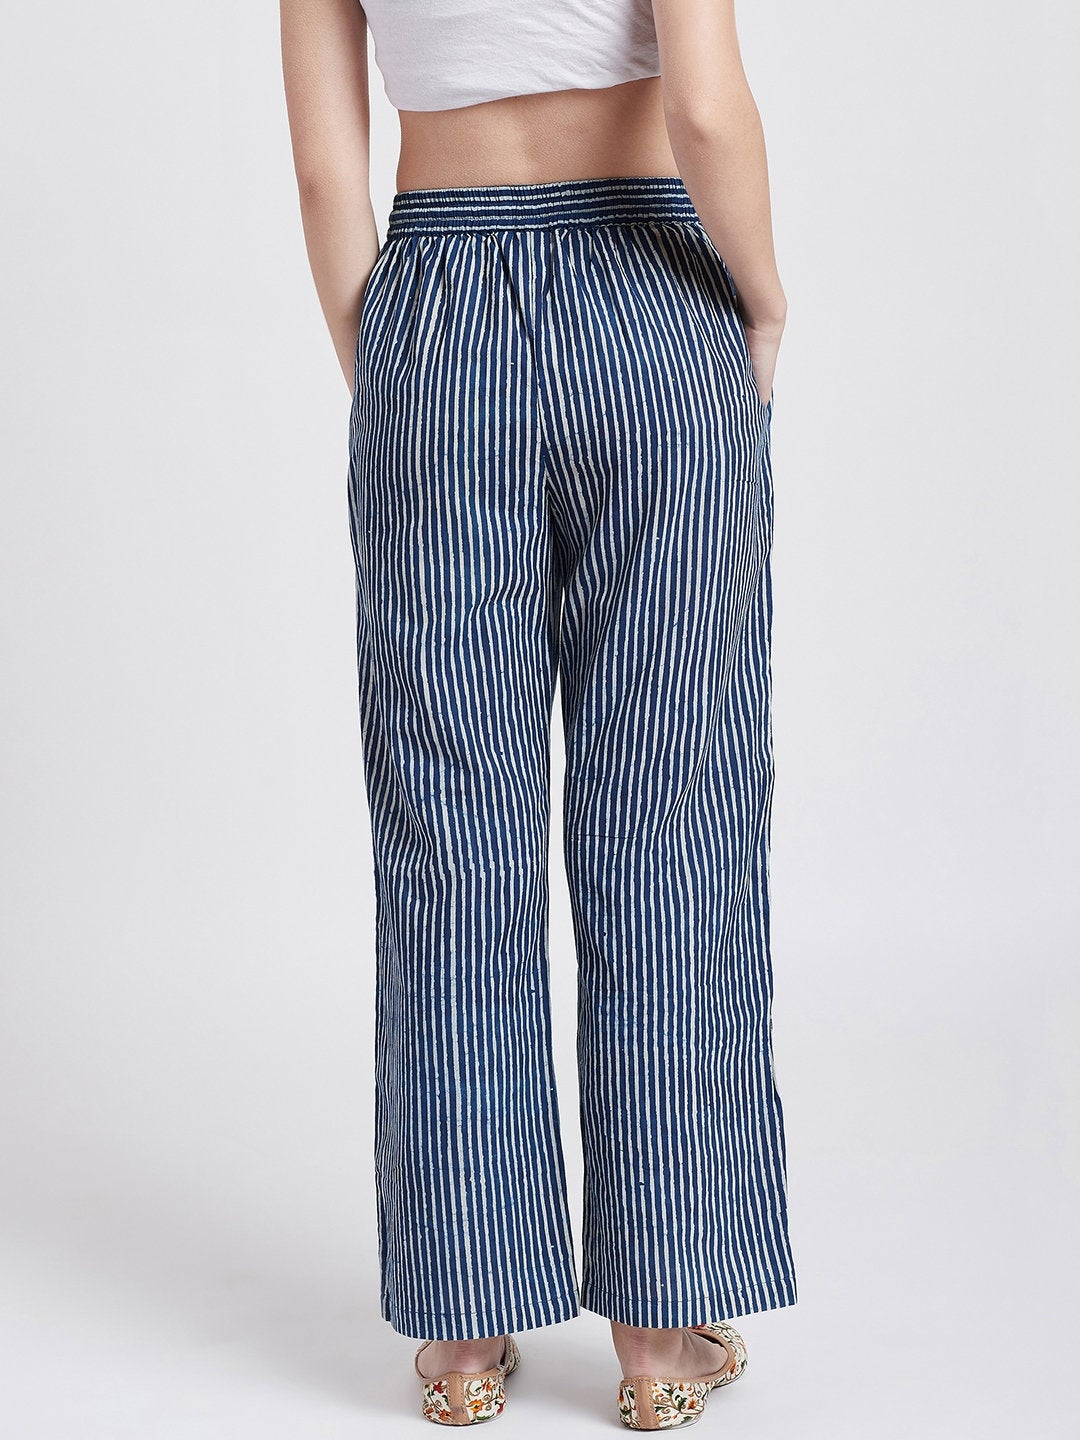 Indigo hand block cotton printed straight pants with pockets